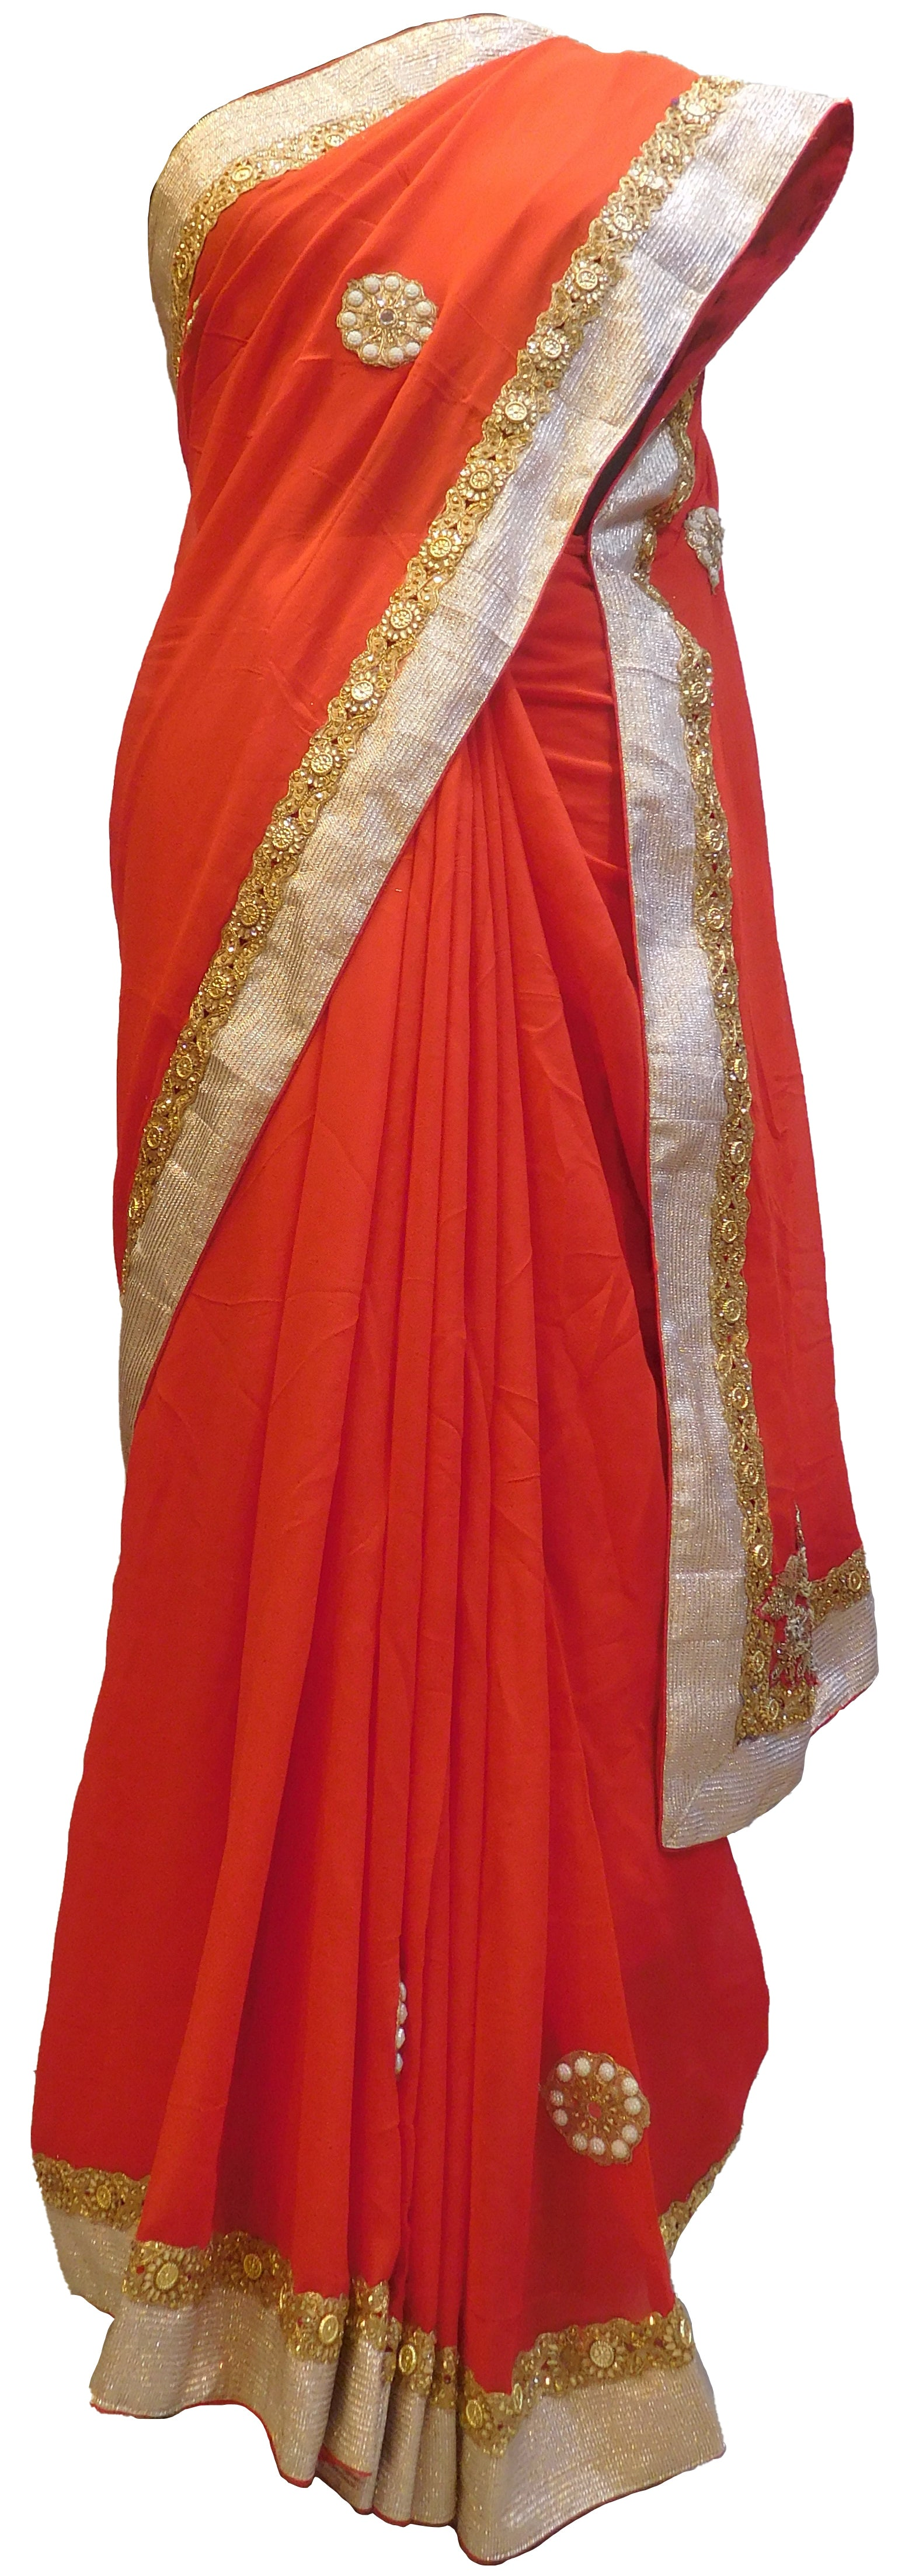 SMSAREE Red Designer Wedding Partywear Georgette (Viscos) Stone Zari Sequence & Bullion Hand Embroidery Work Bridal Saree Sari With Blouse Piece E485